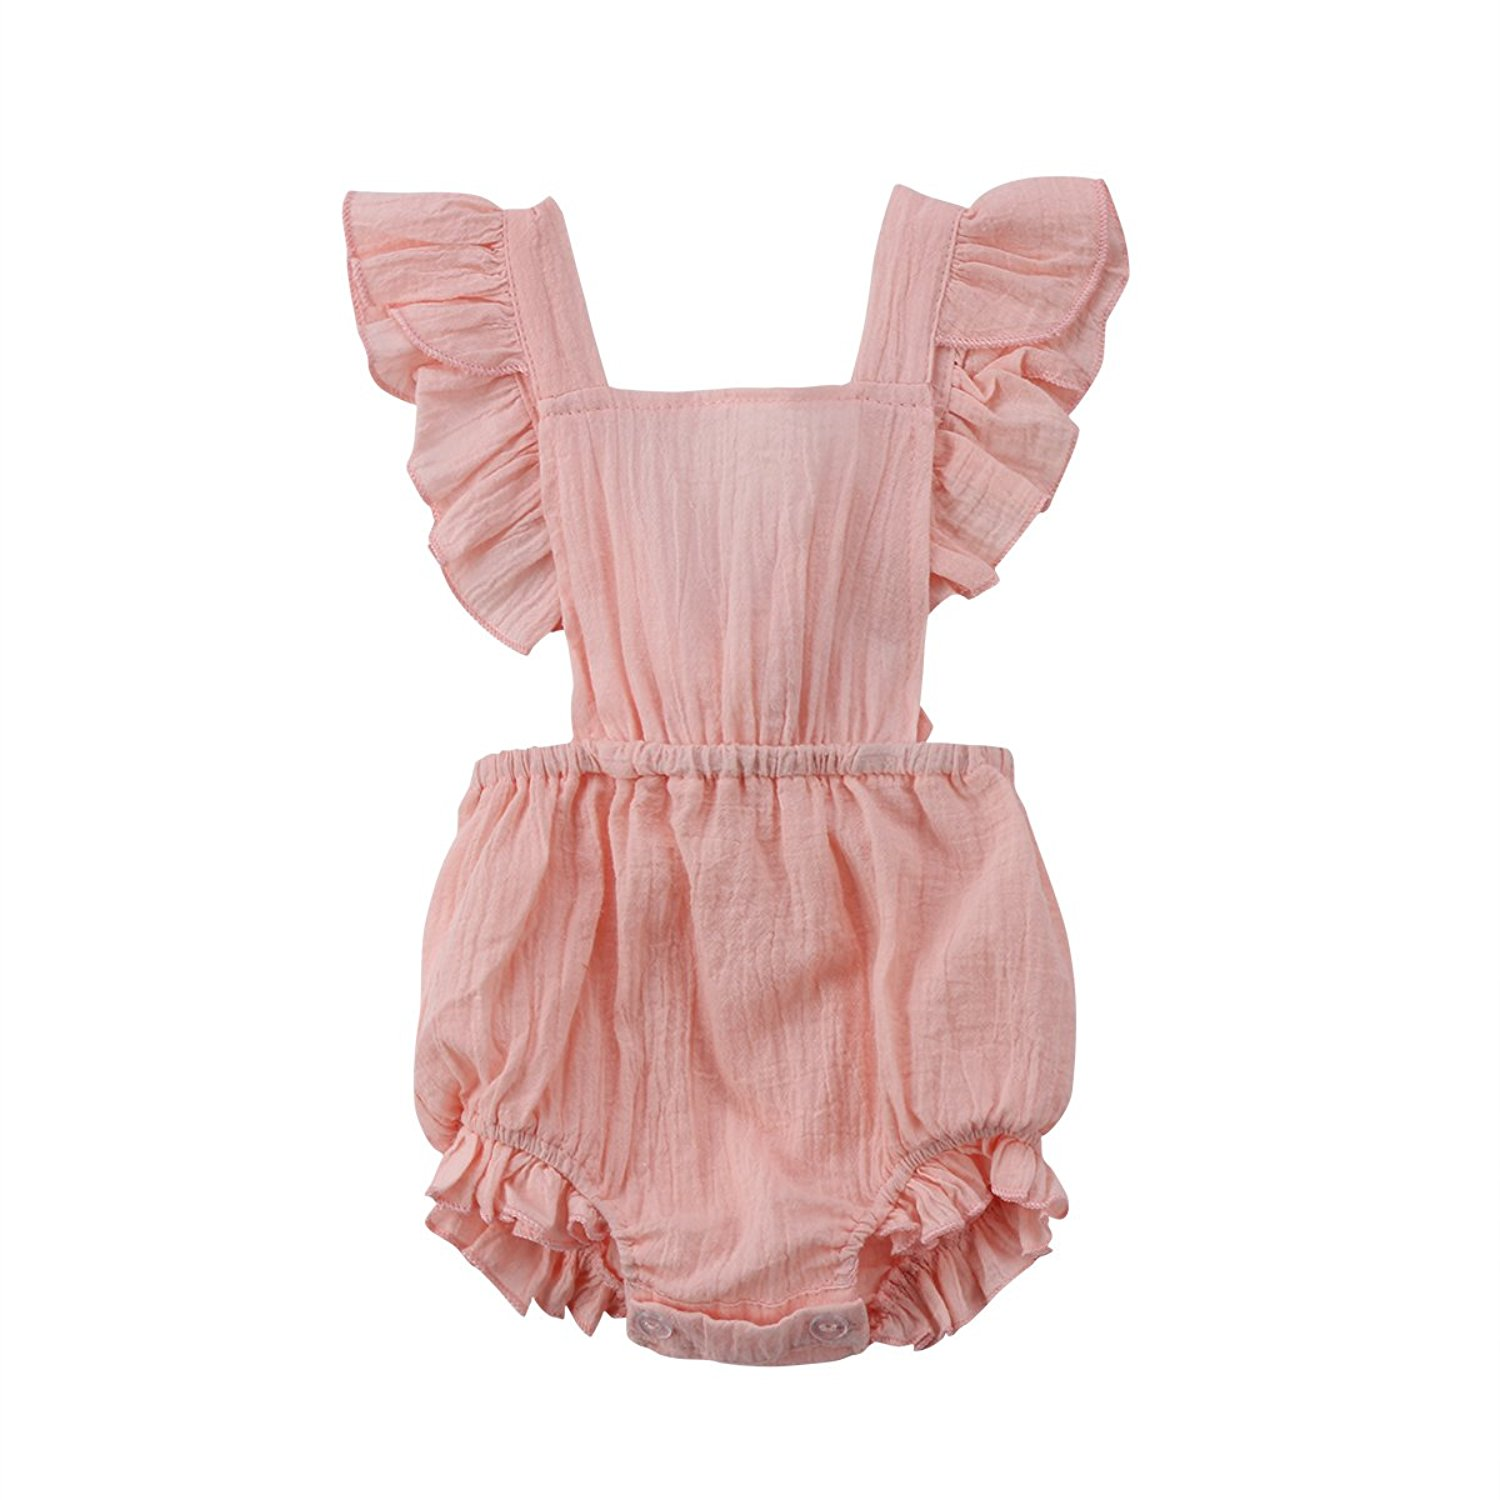 Baby Girl Butterfly Sleeve Backless Ruffle Romper - Adorable Amazon Outfits for Baby Girls and Toddlers by popular North Carolina style blogger, Glitter, Inc.